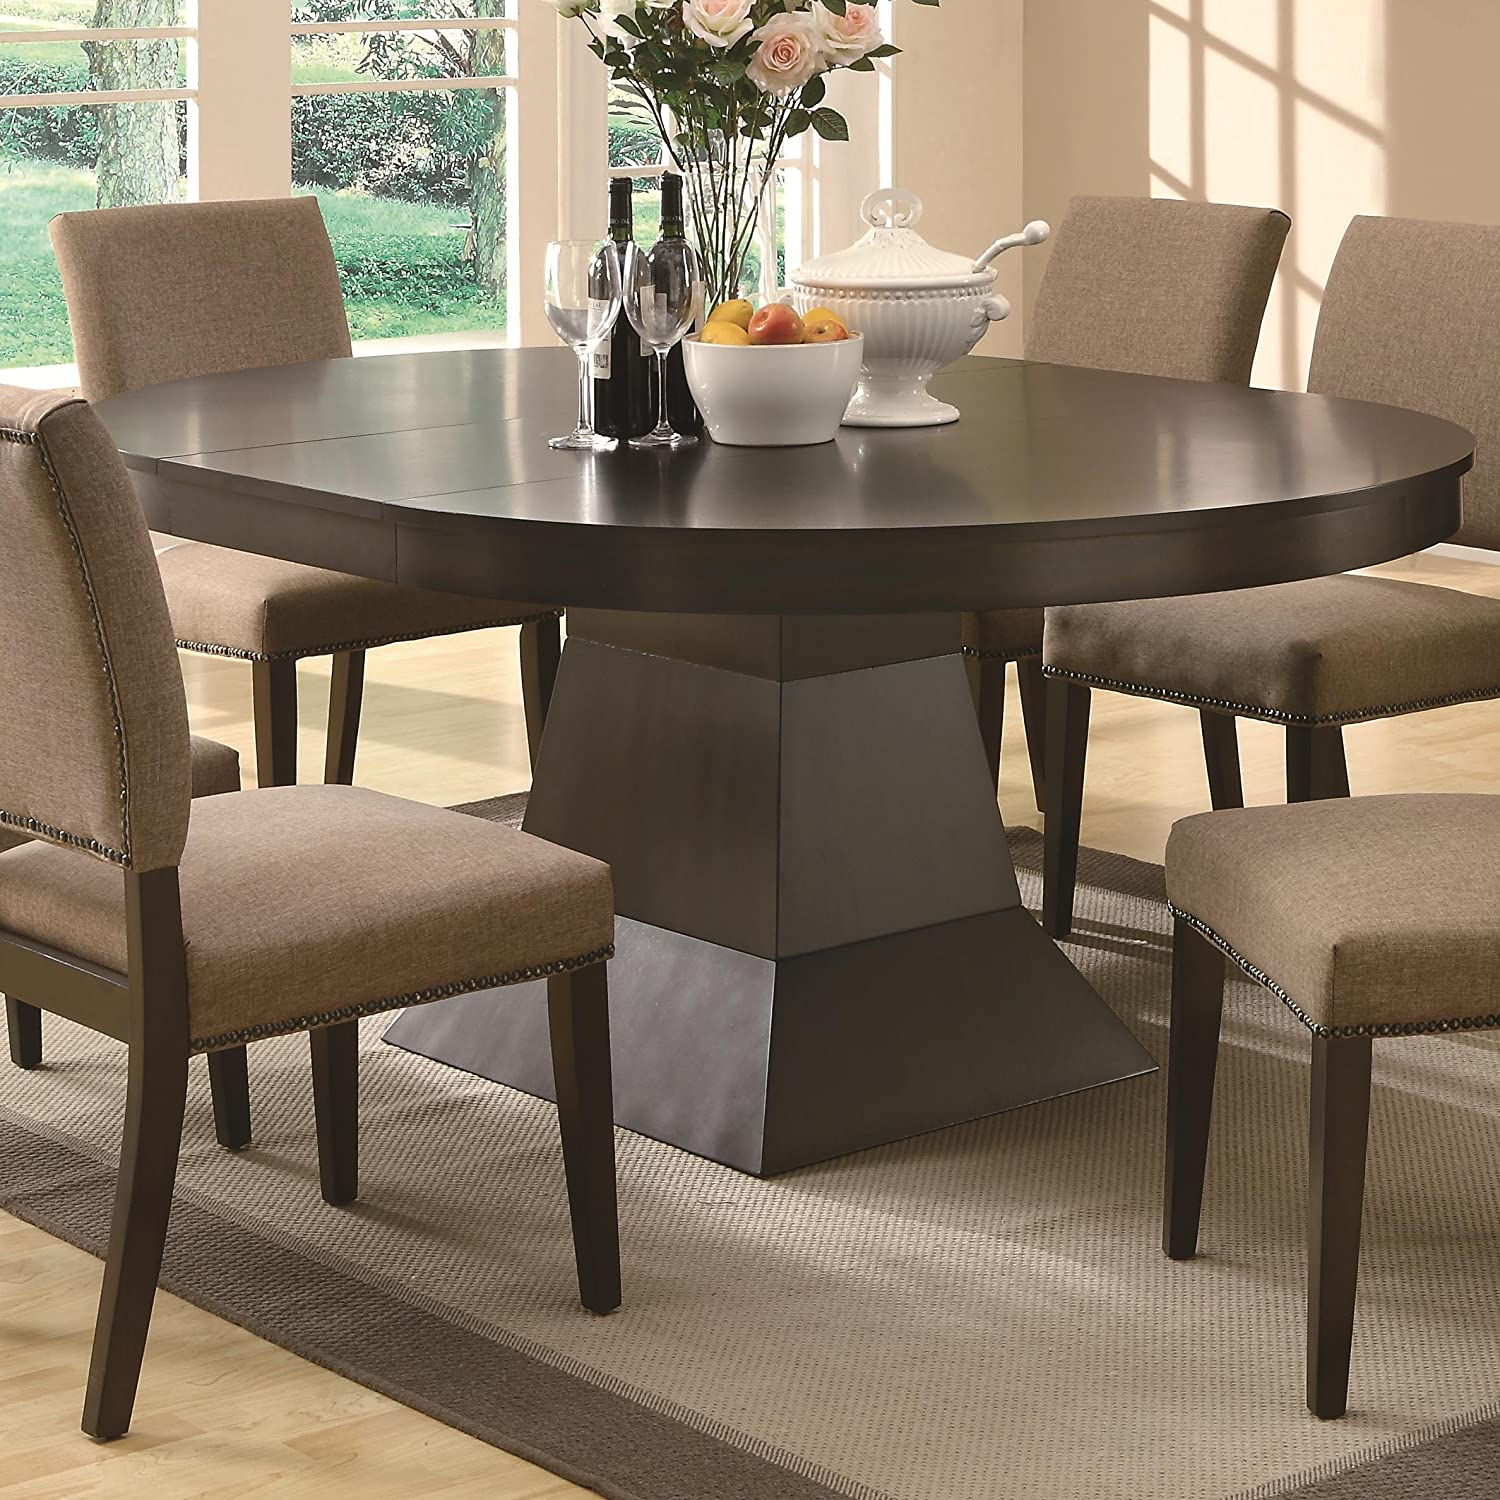 Amazon Myrtle Dining Oval Table w Extension In Coffee Brown